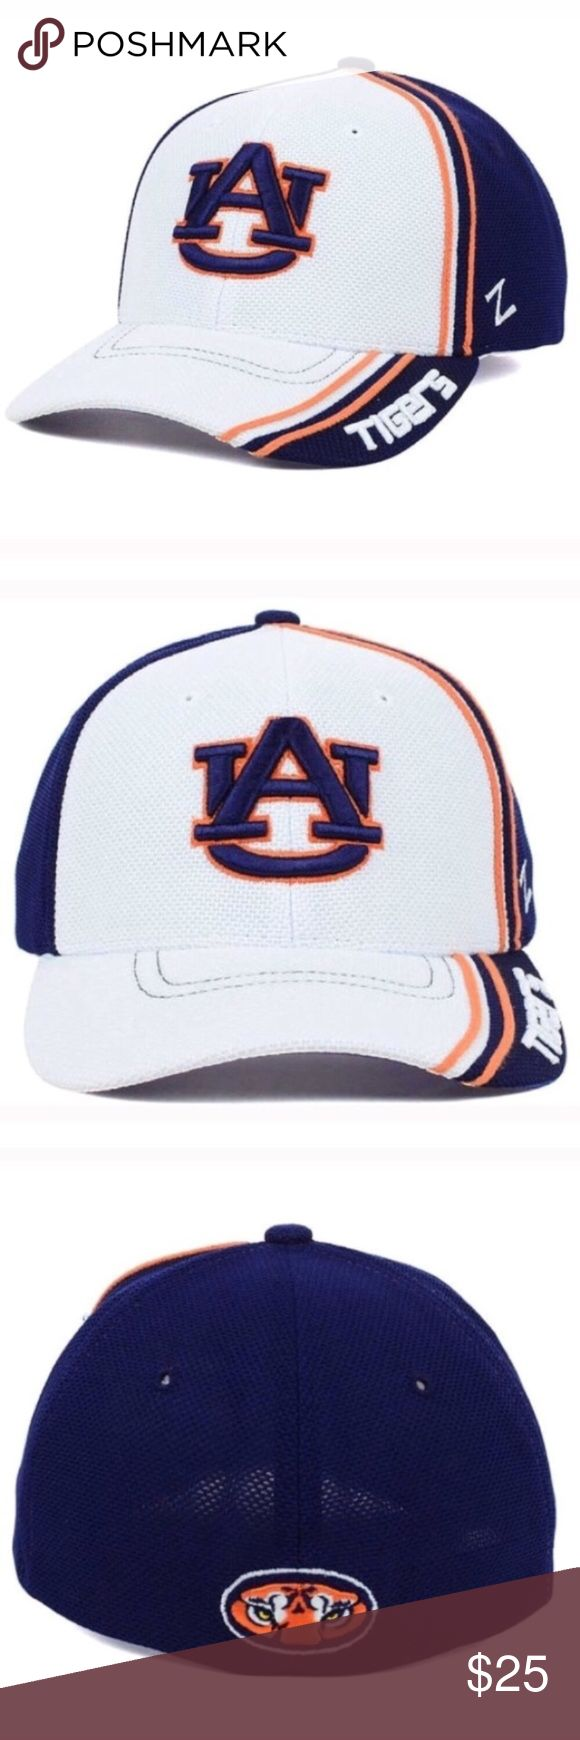 Auburn tigers hat cap Show your support for the NCAA and the Auburn Tigers this year with the Auburn Tigers NCAA Slash AG Cap. Rain or shine, this White hat will keep you in style all year long. Stay comfortable and cool with this structured hat, featuring a normal bill and medium crown. Imported and made of woven polyester, this product requires easy spot clean product Color: White Made of 100% Polyester, Woven Stretch Fitted Structured Fit Mid Crown Normal Bill Raised Embroidery Letter on…